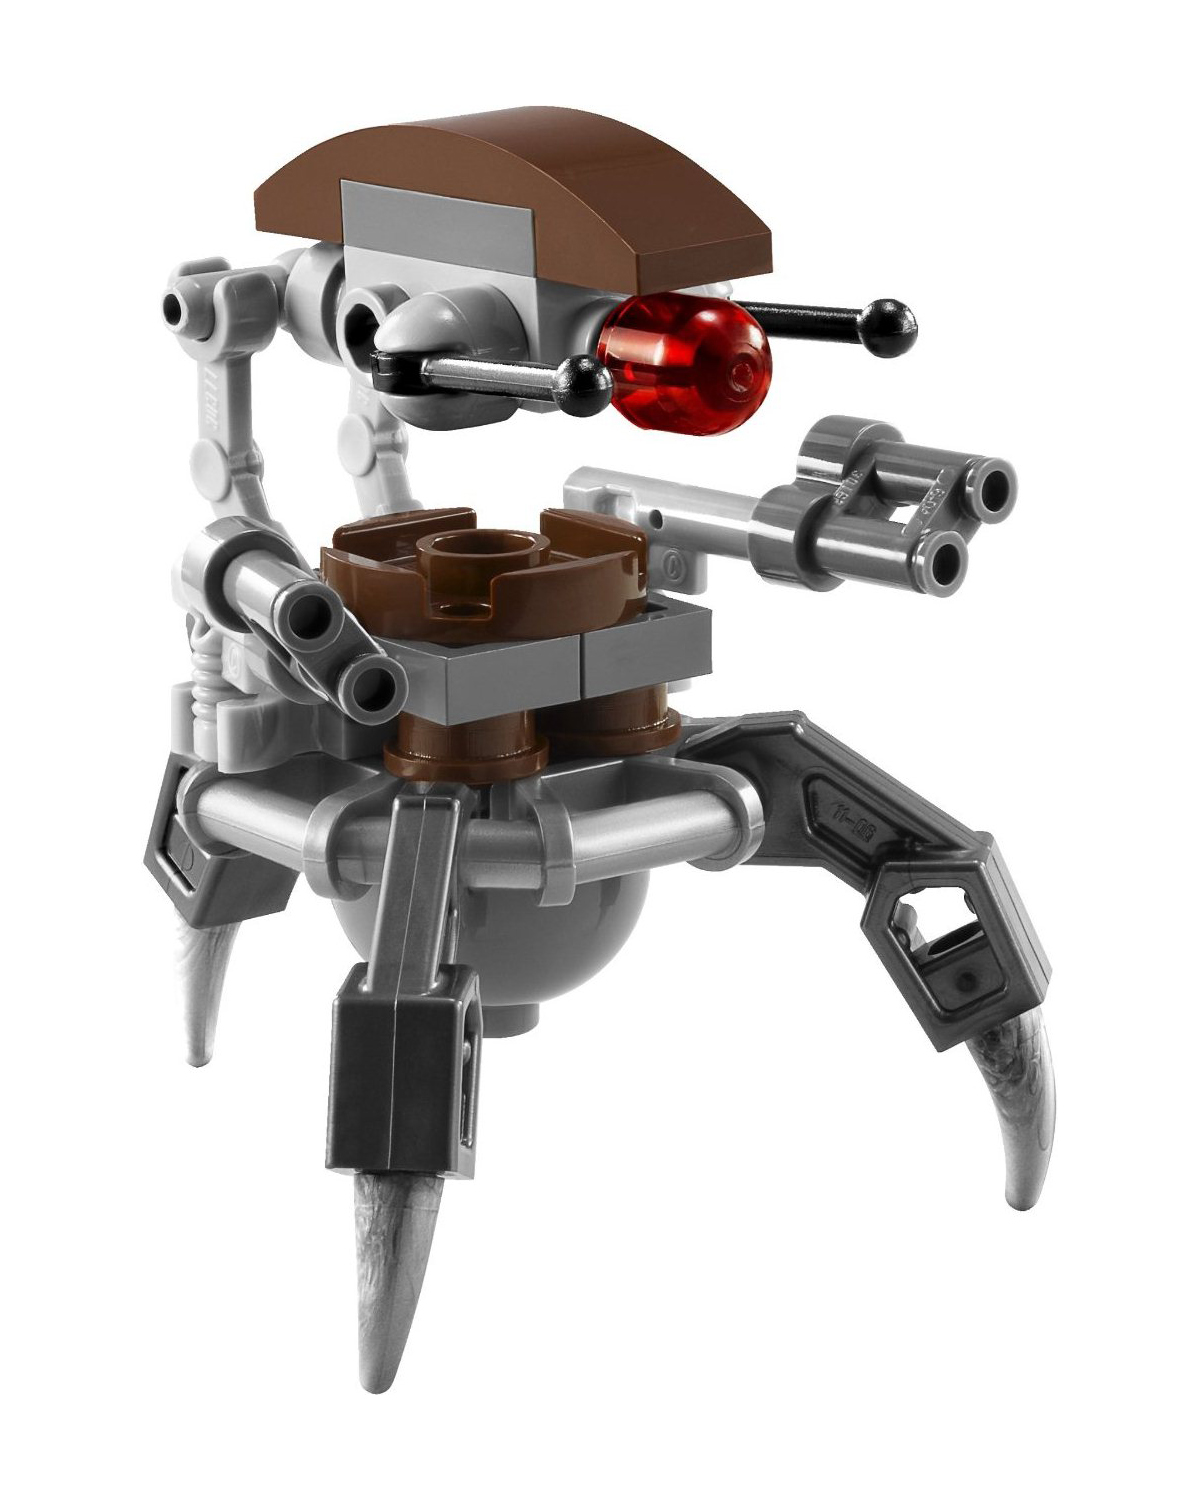 Lego 7500 Clone Troopers vs. Droidekas - Figure 3 View 1